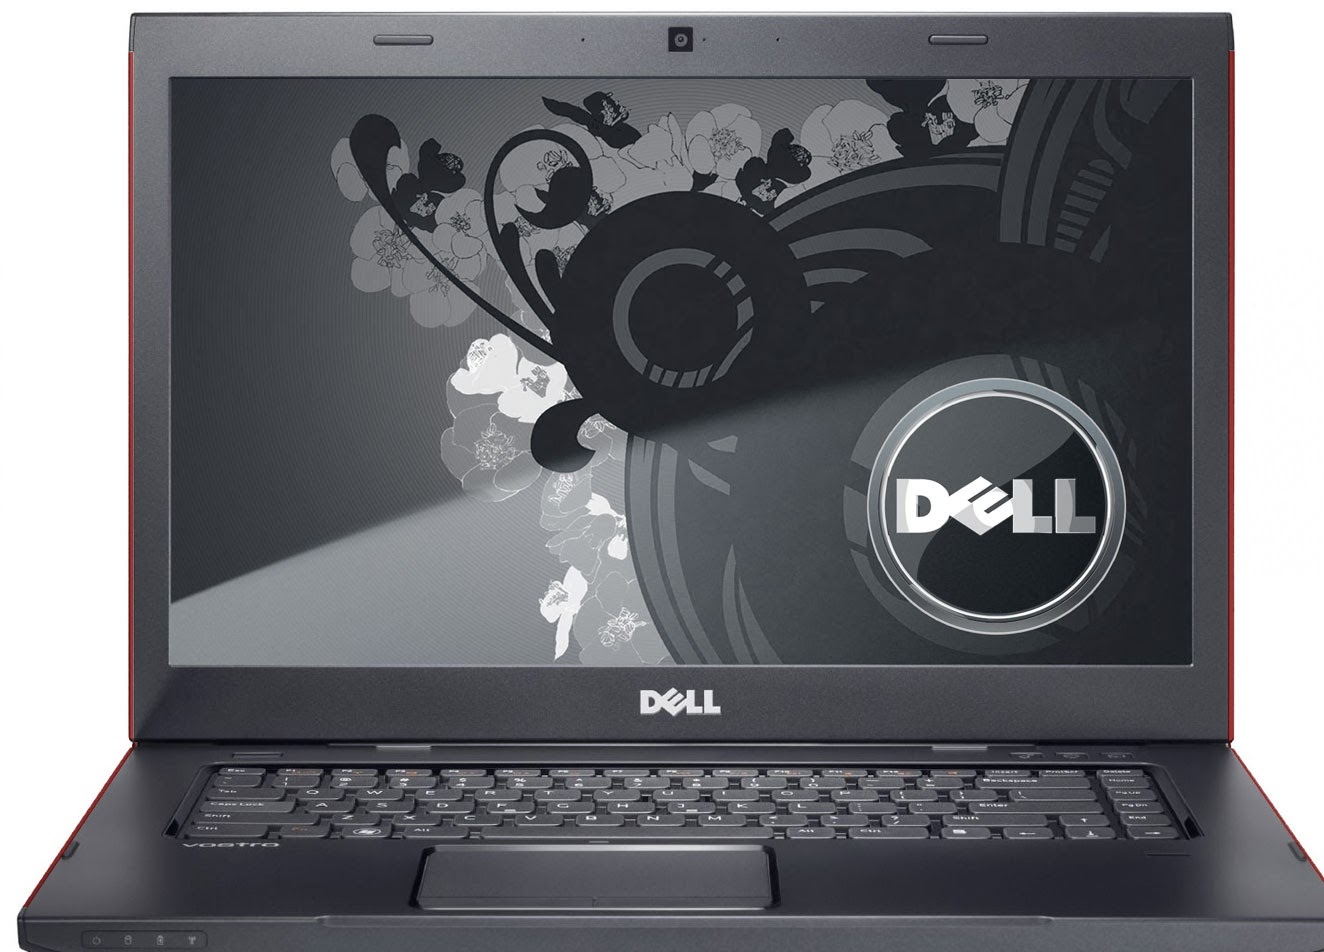 Dell Vostro 3550 Drivers For Windows 8